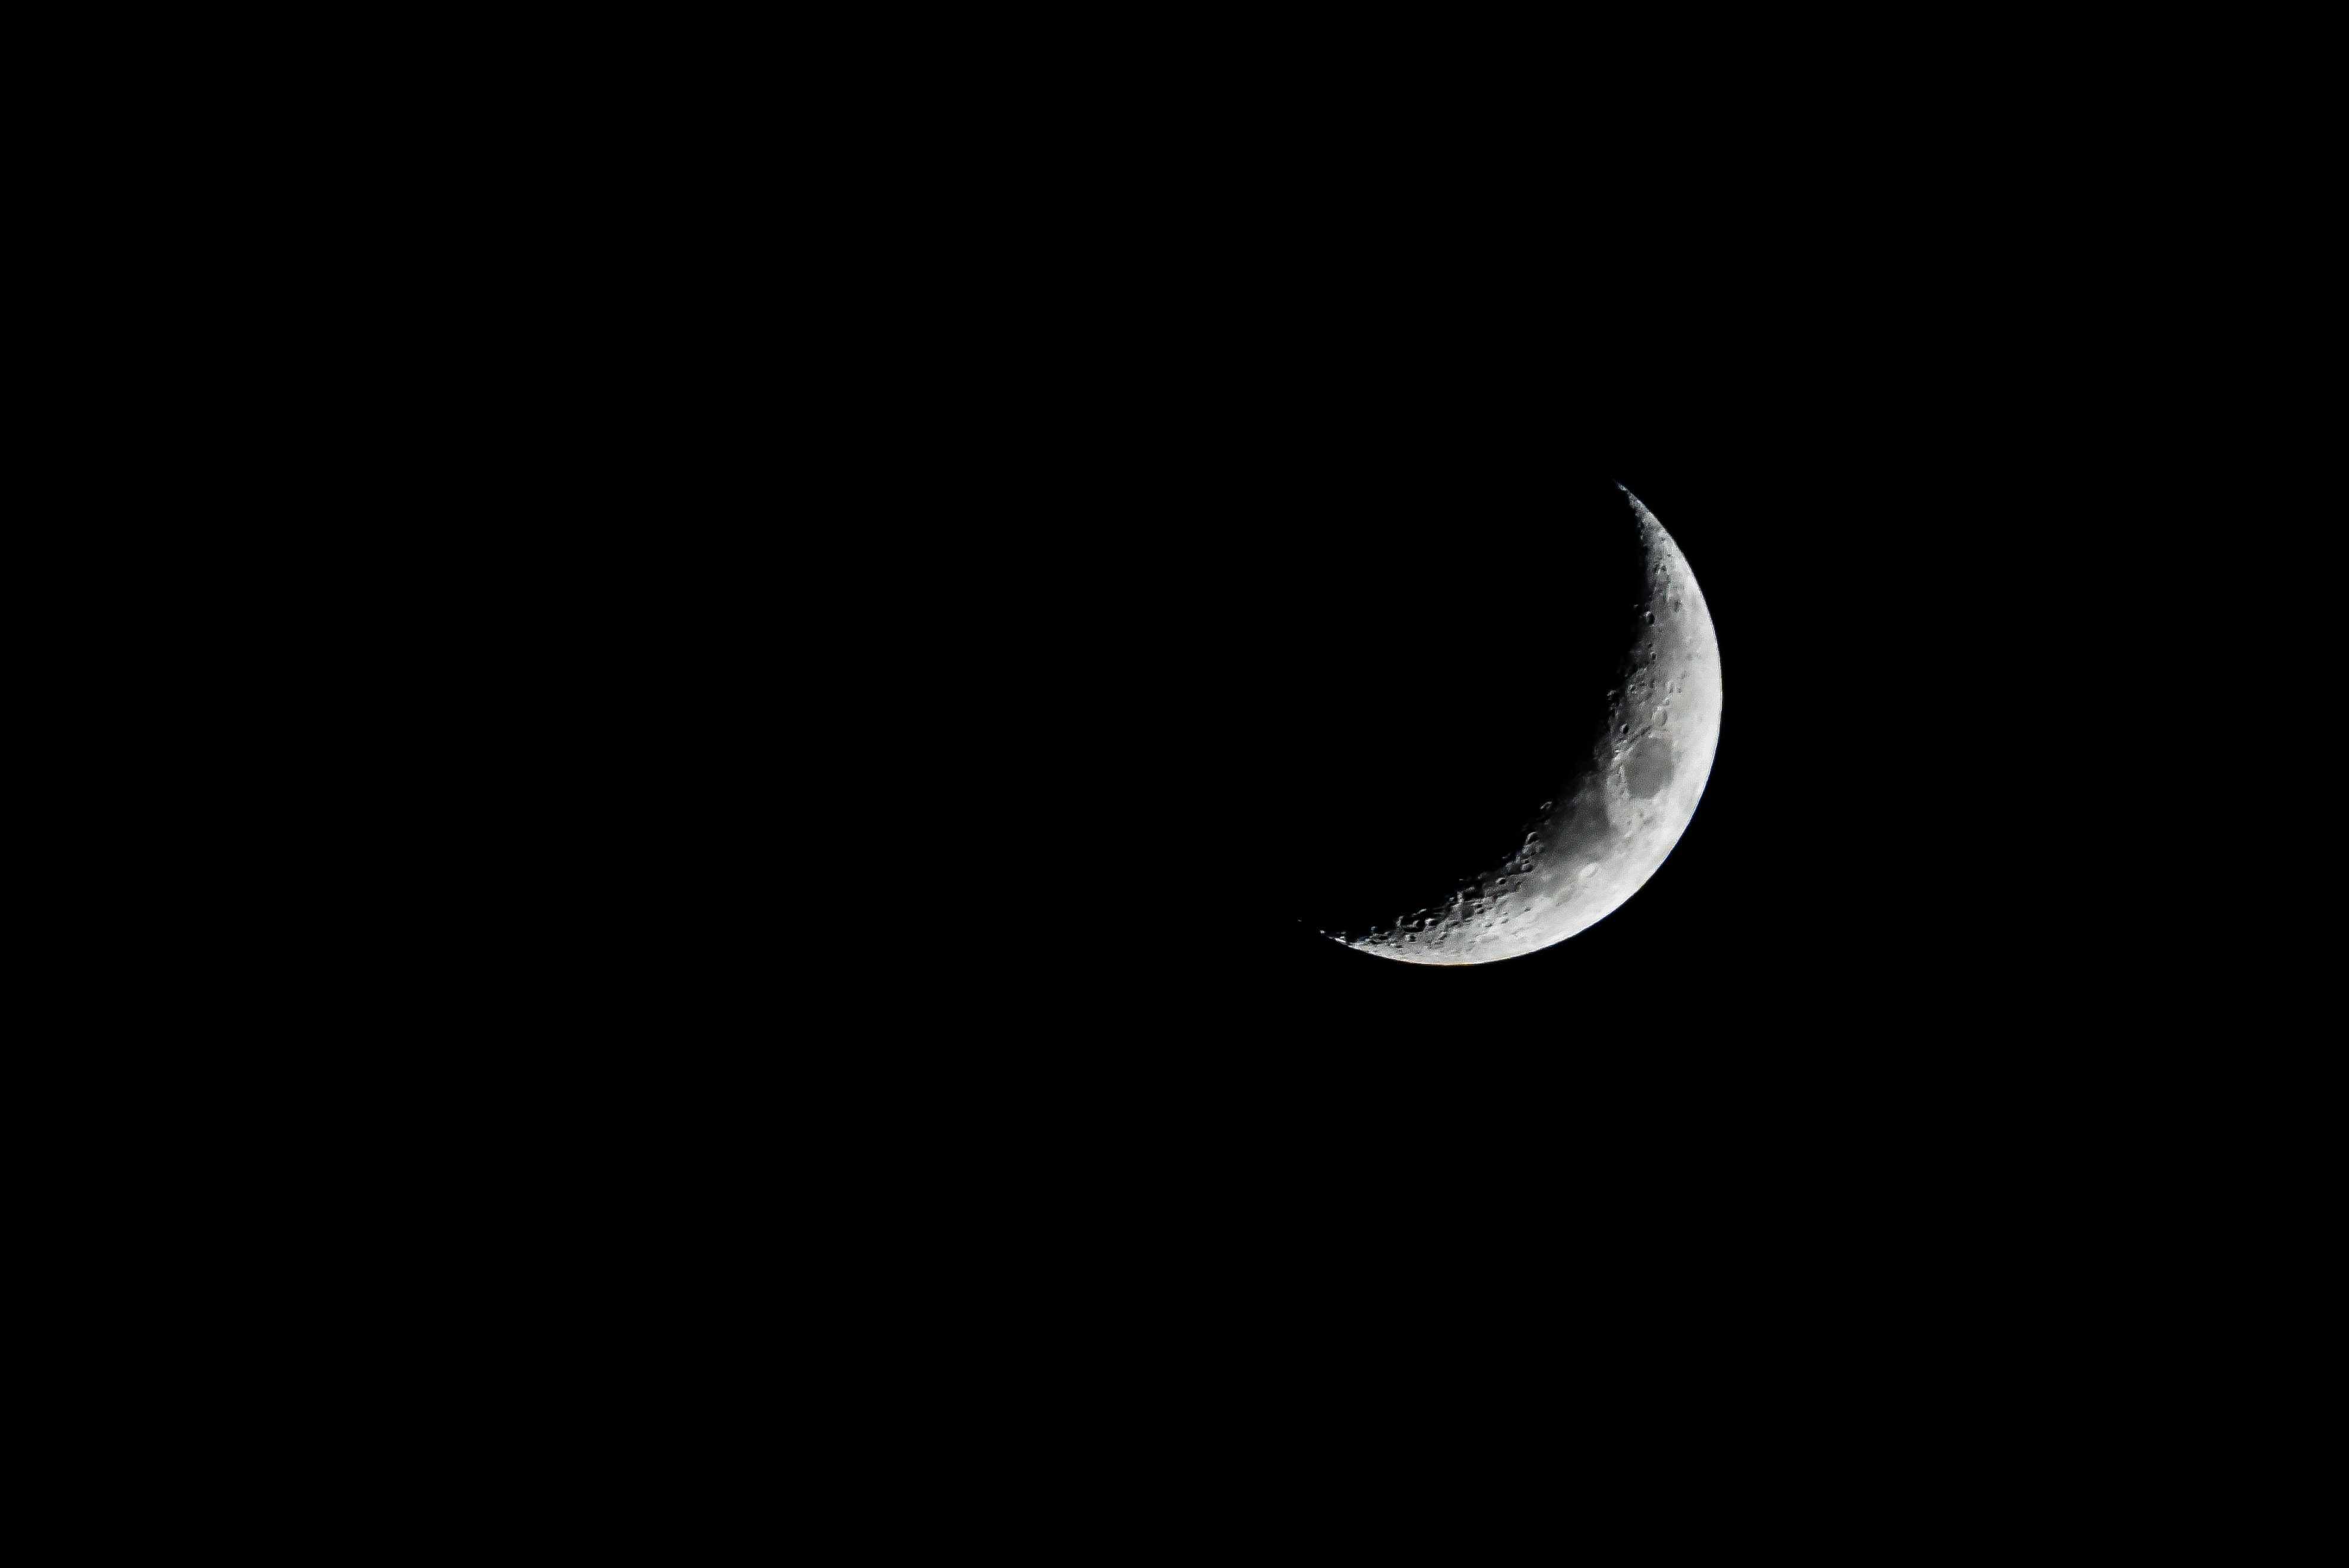 New moon, moon, sky, space, lunar, moon, night, white and black